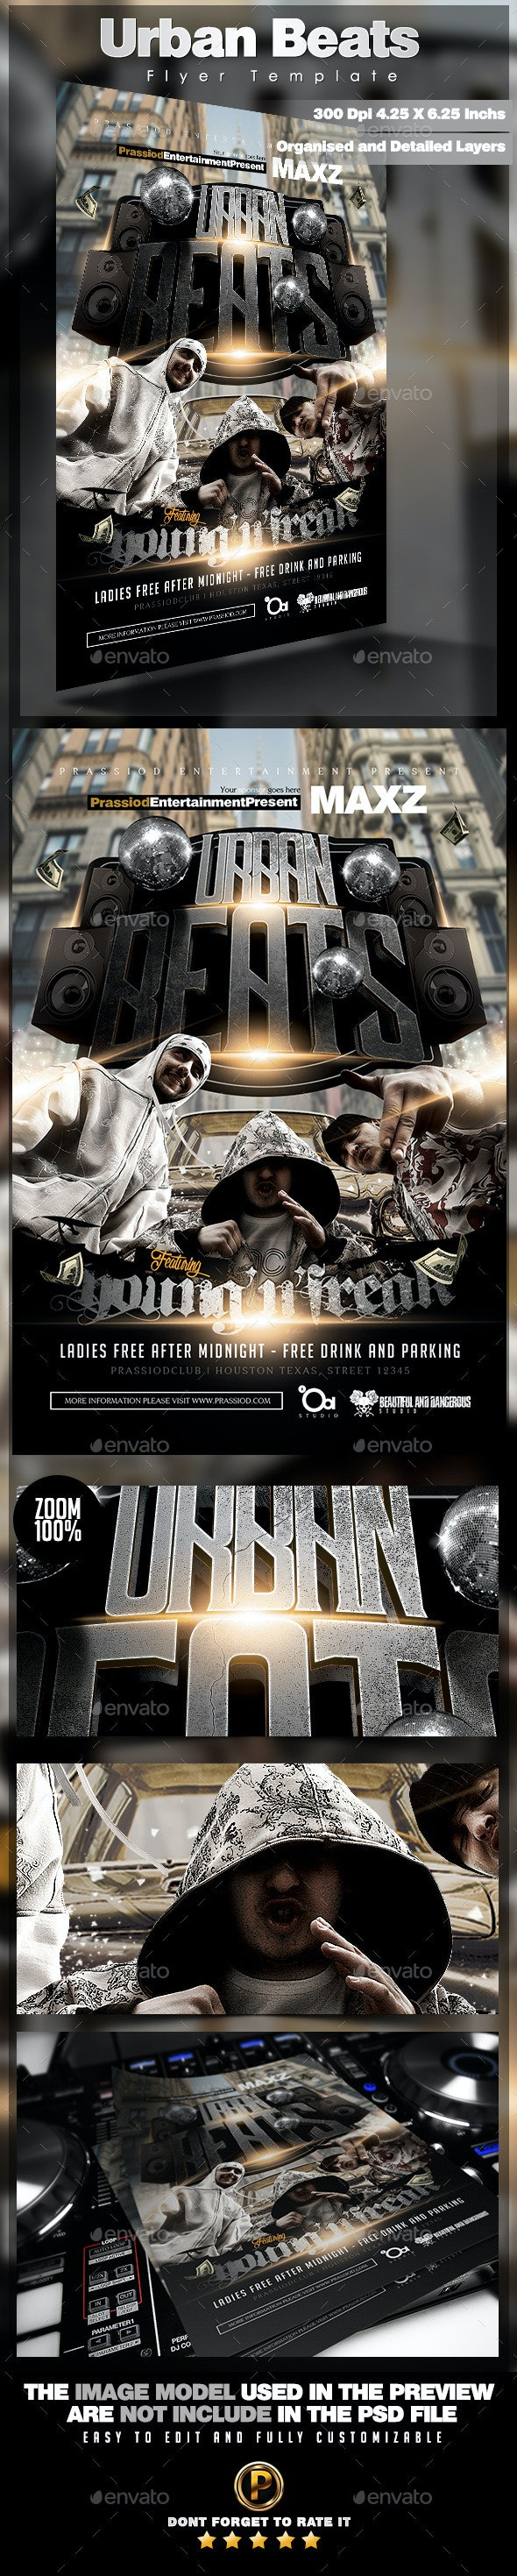 Urban Beats Flyer Template - Clubs & Parties Events